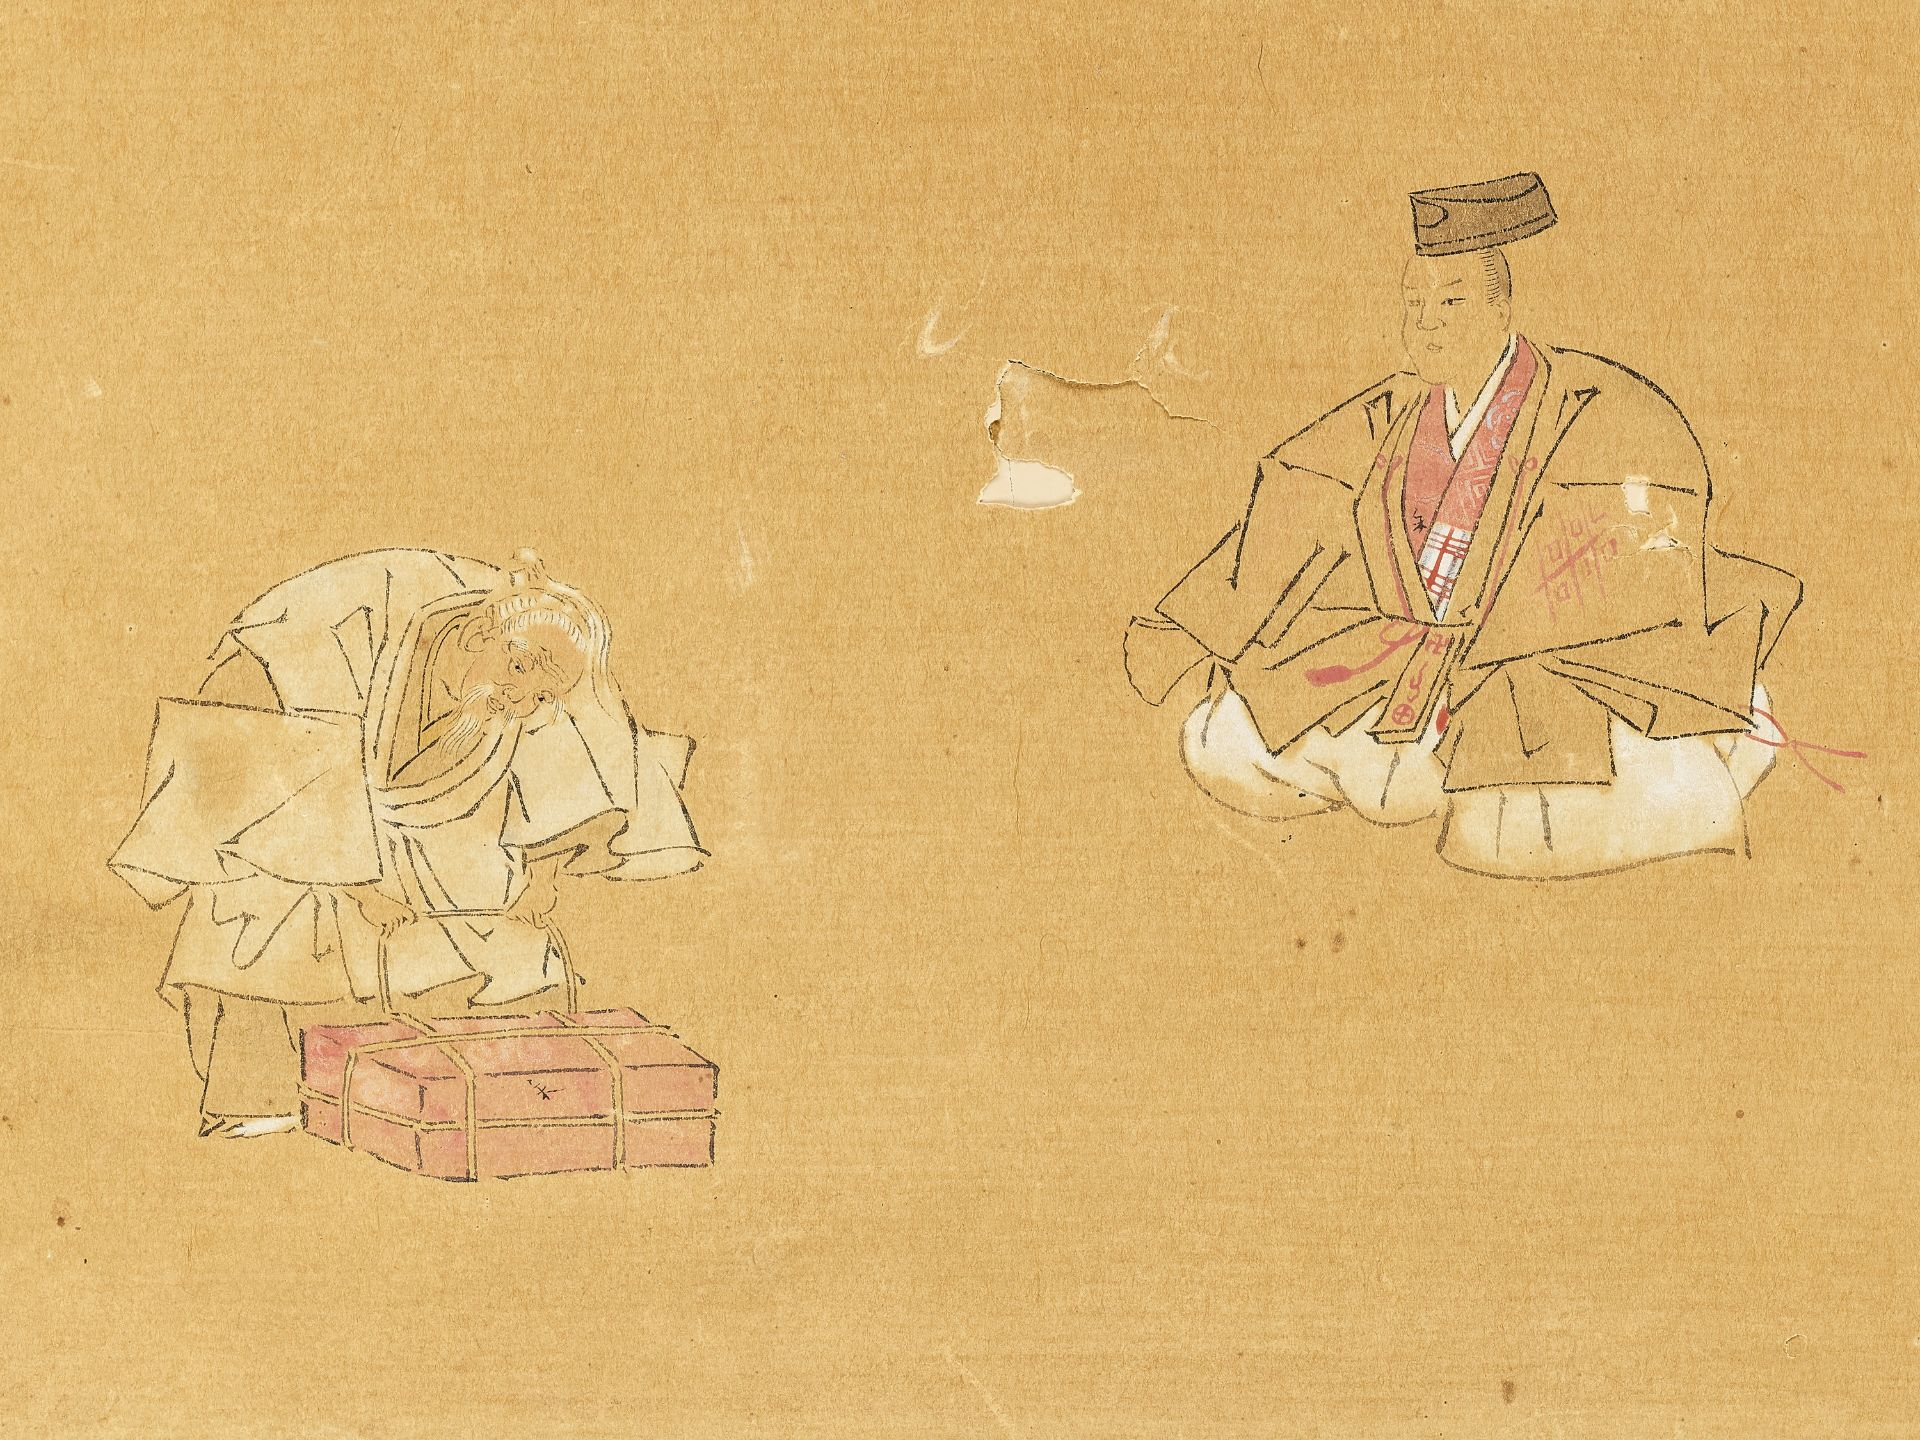 A SMALL PAINTING OF TAOIST FIGURES, 19TH CENTURY - Image 2 of 4